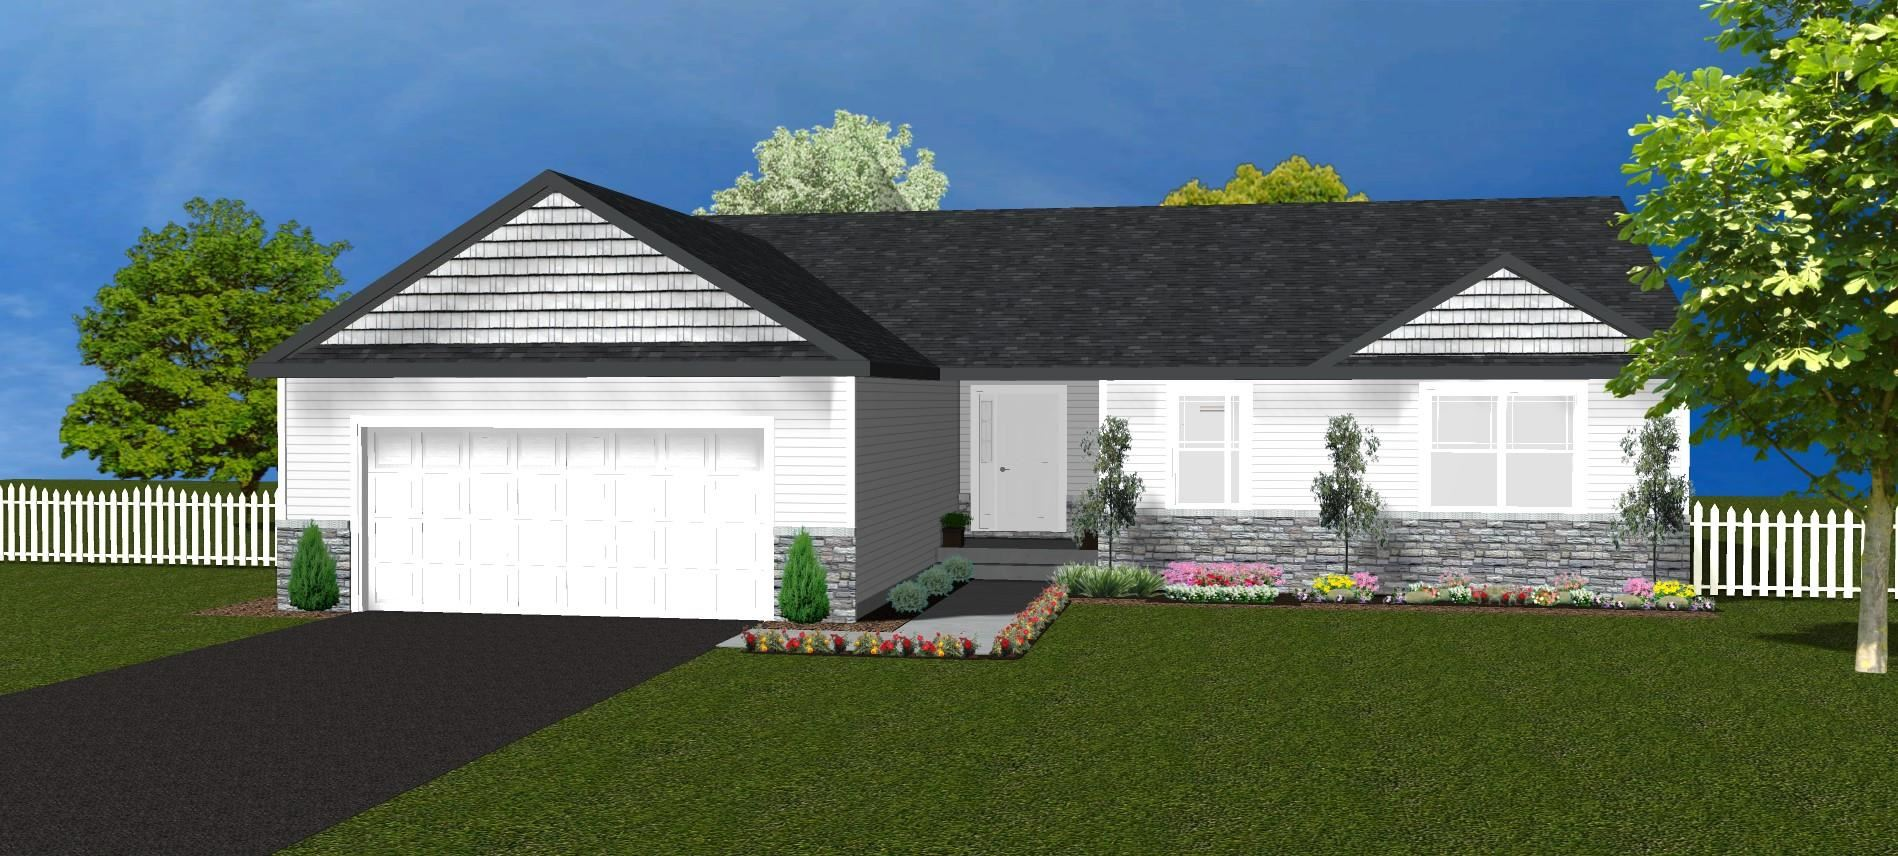 22243 Sandy Hill South Bend, IN 46628